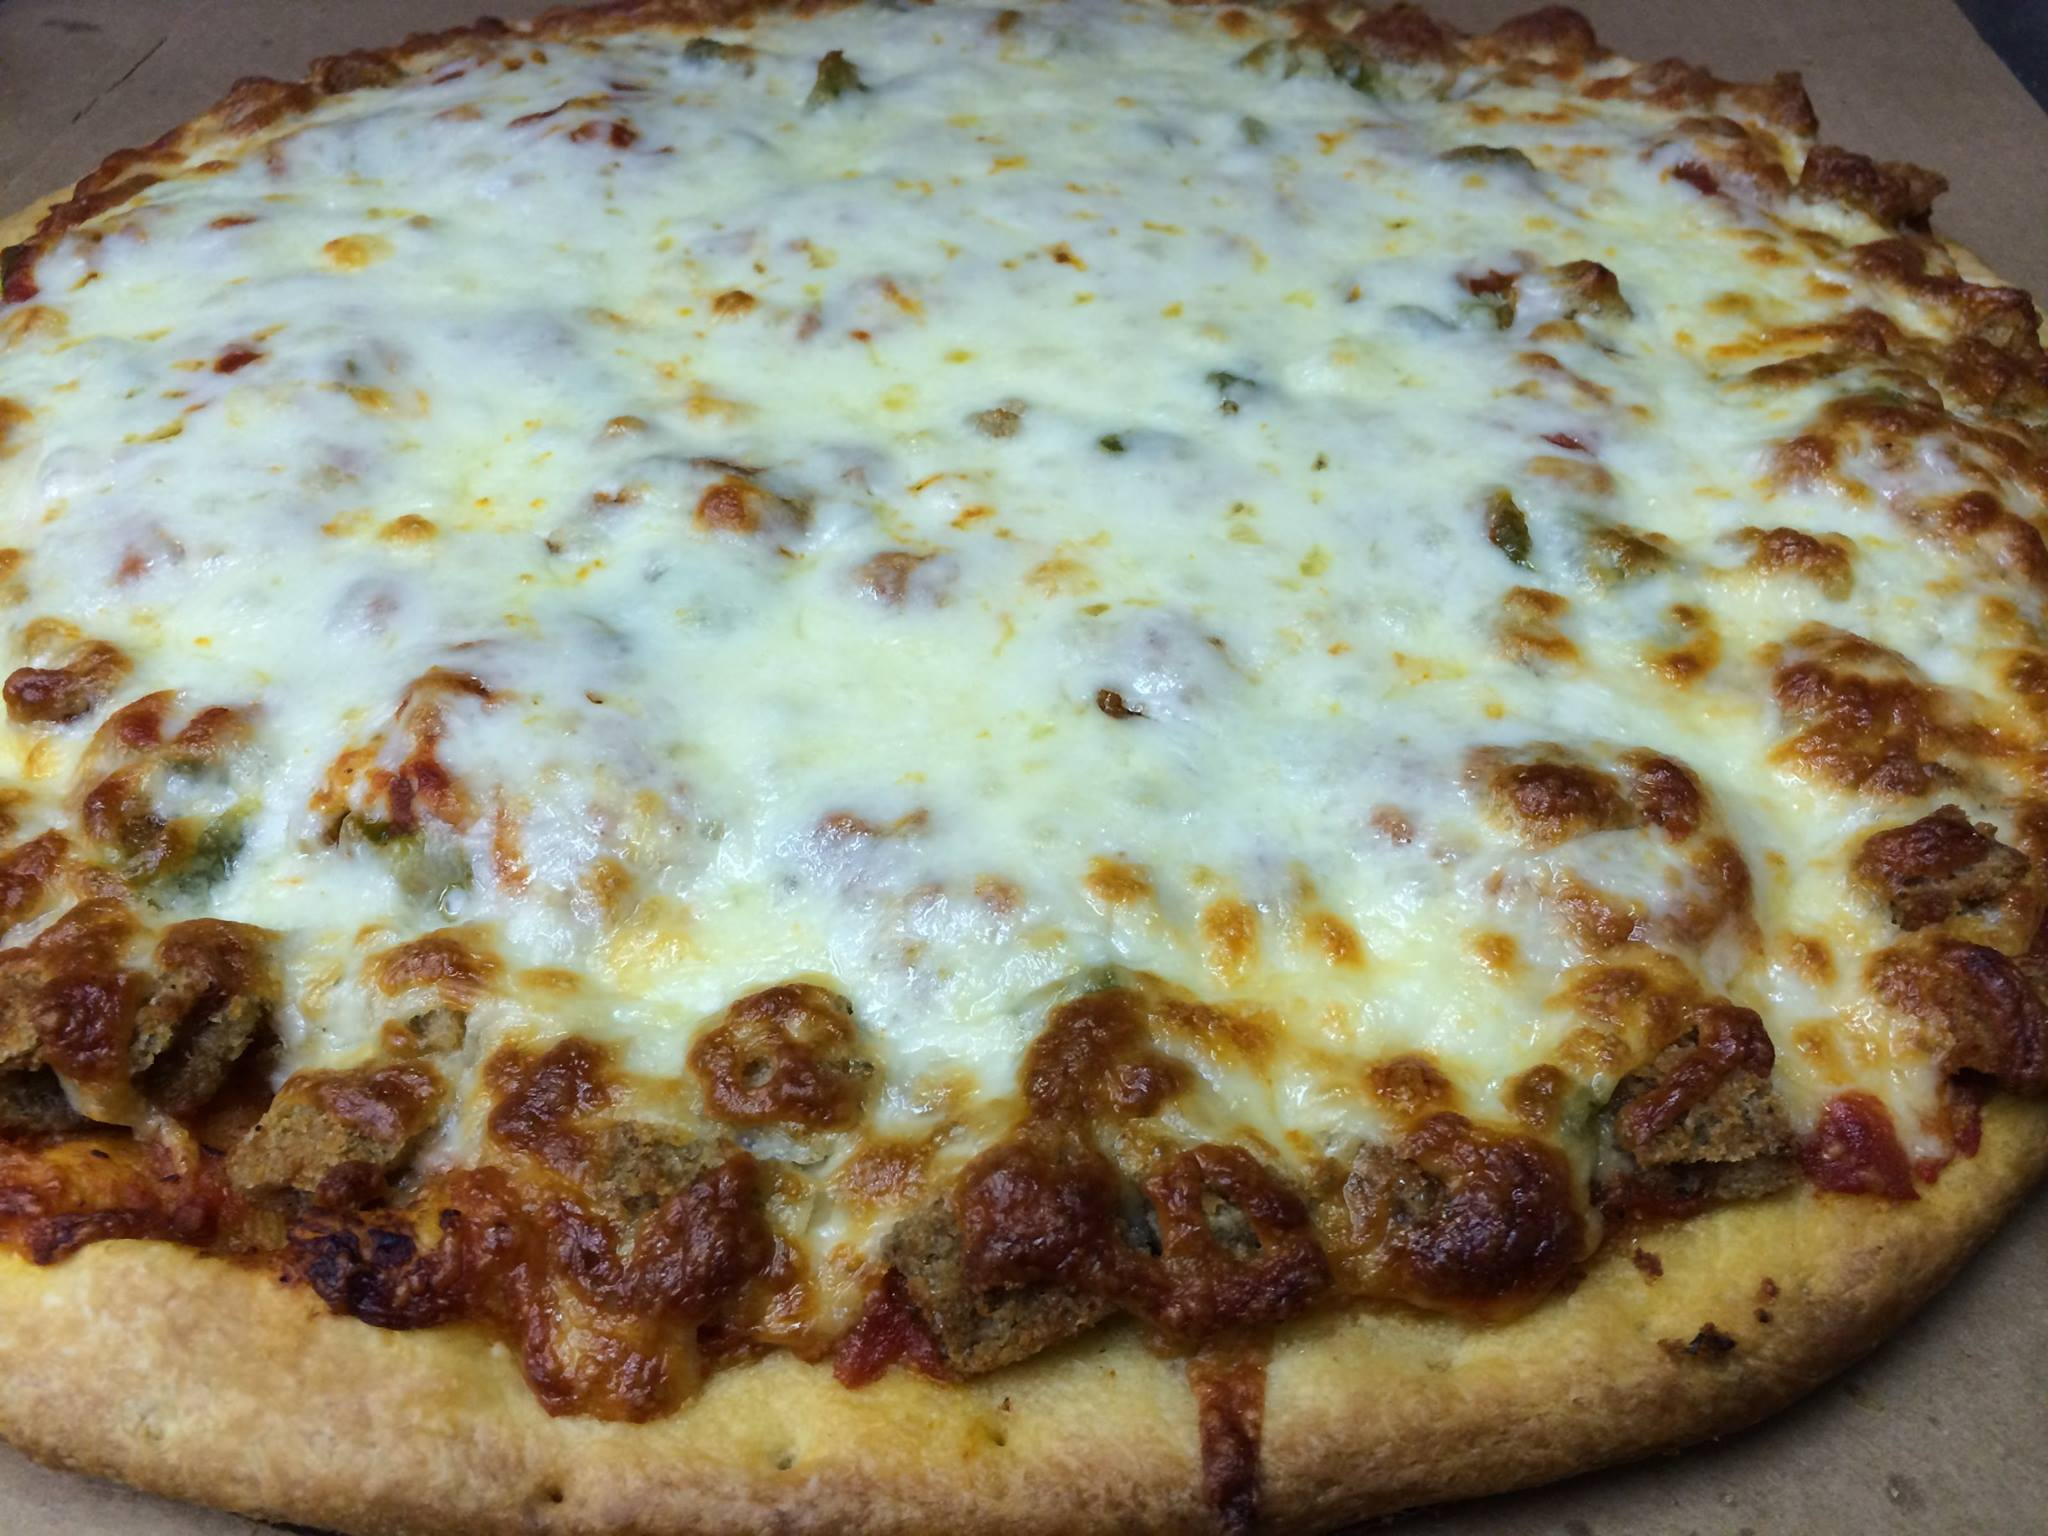 Ricobene's Breaded Steak Pizza - if it's even half as good as the sandwich this is something we have to try!